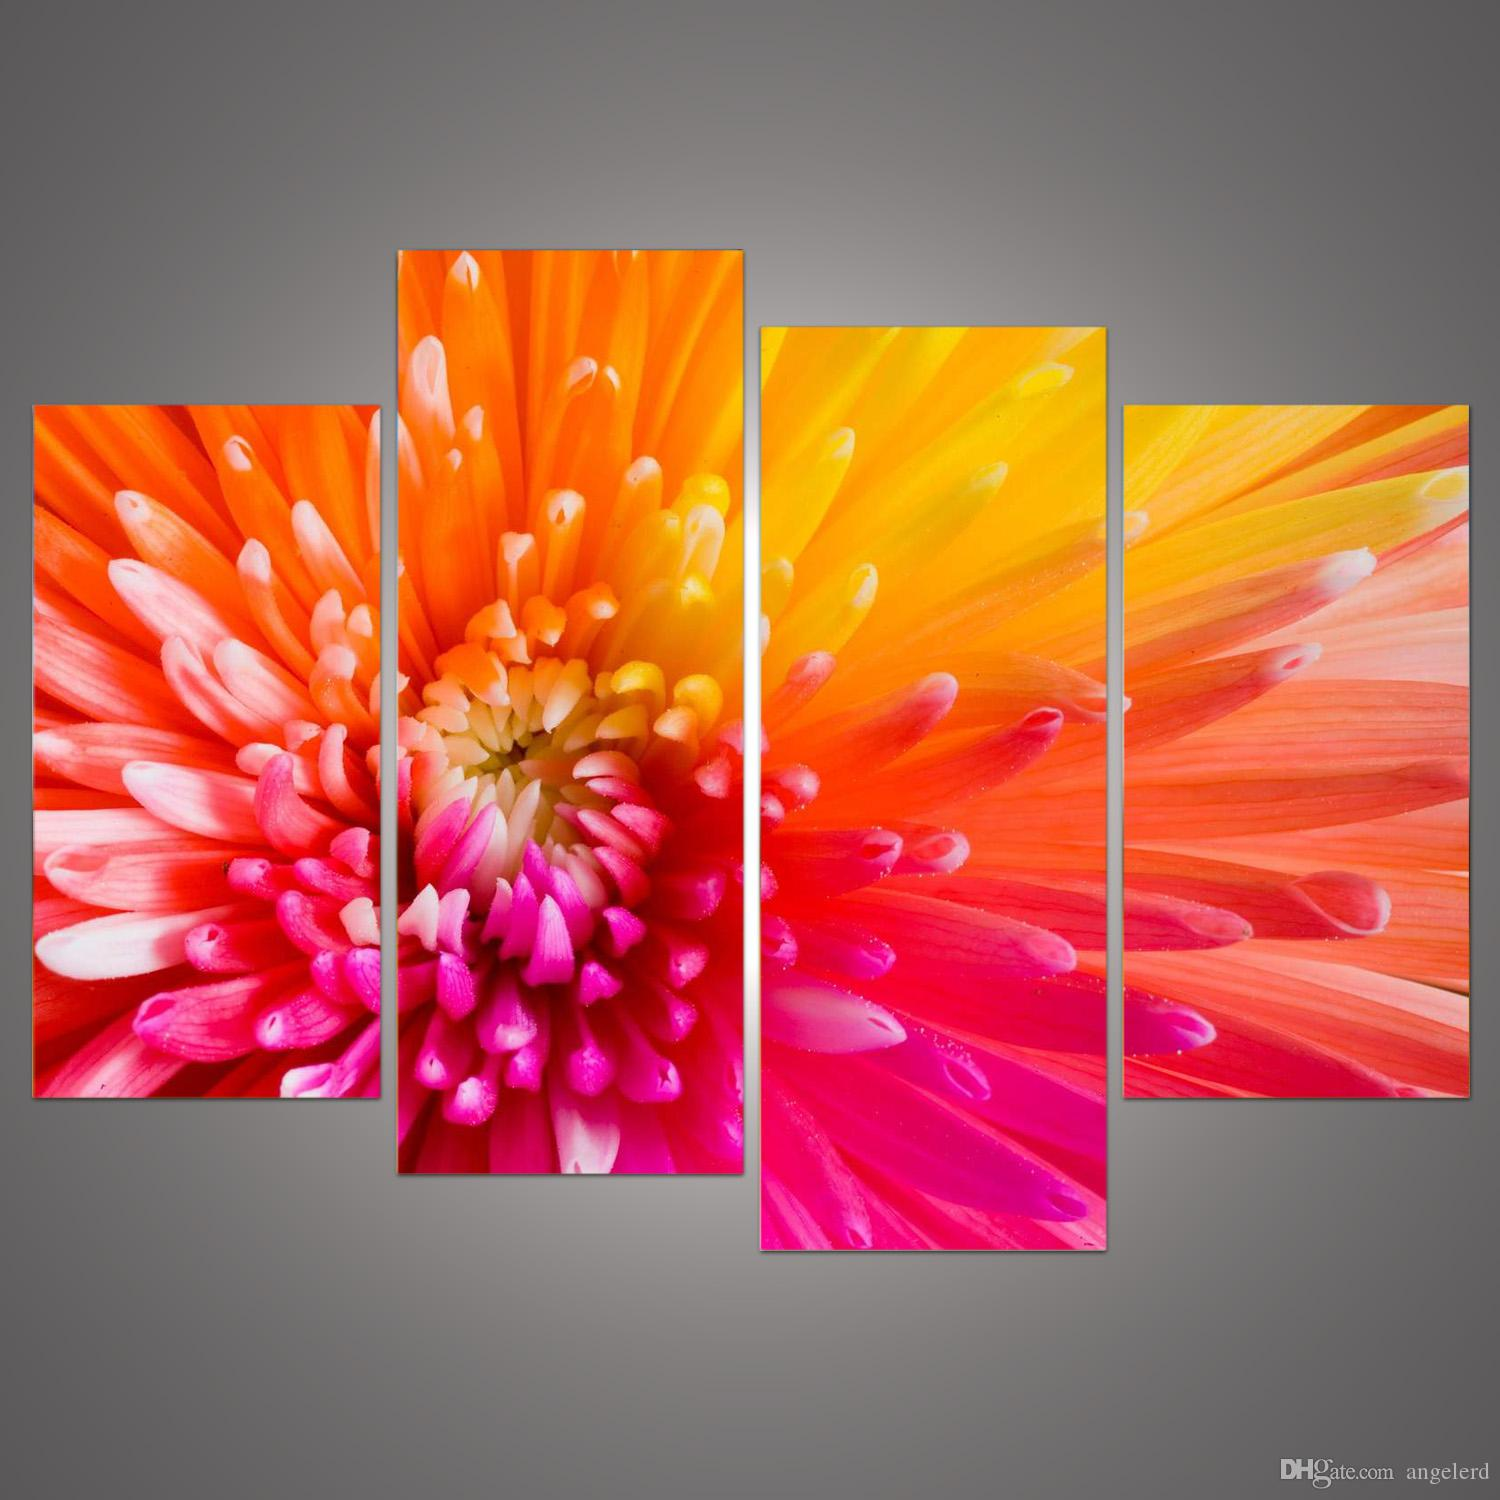 2018 modern home decoration wall decor art picture for living room pink orange flower canvas print oil painting on canvas no frame h 210 from angelerd